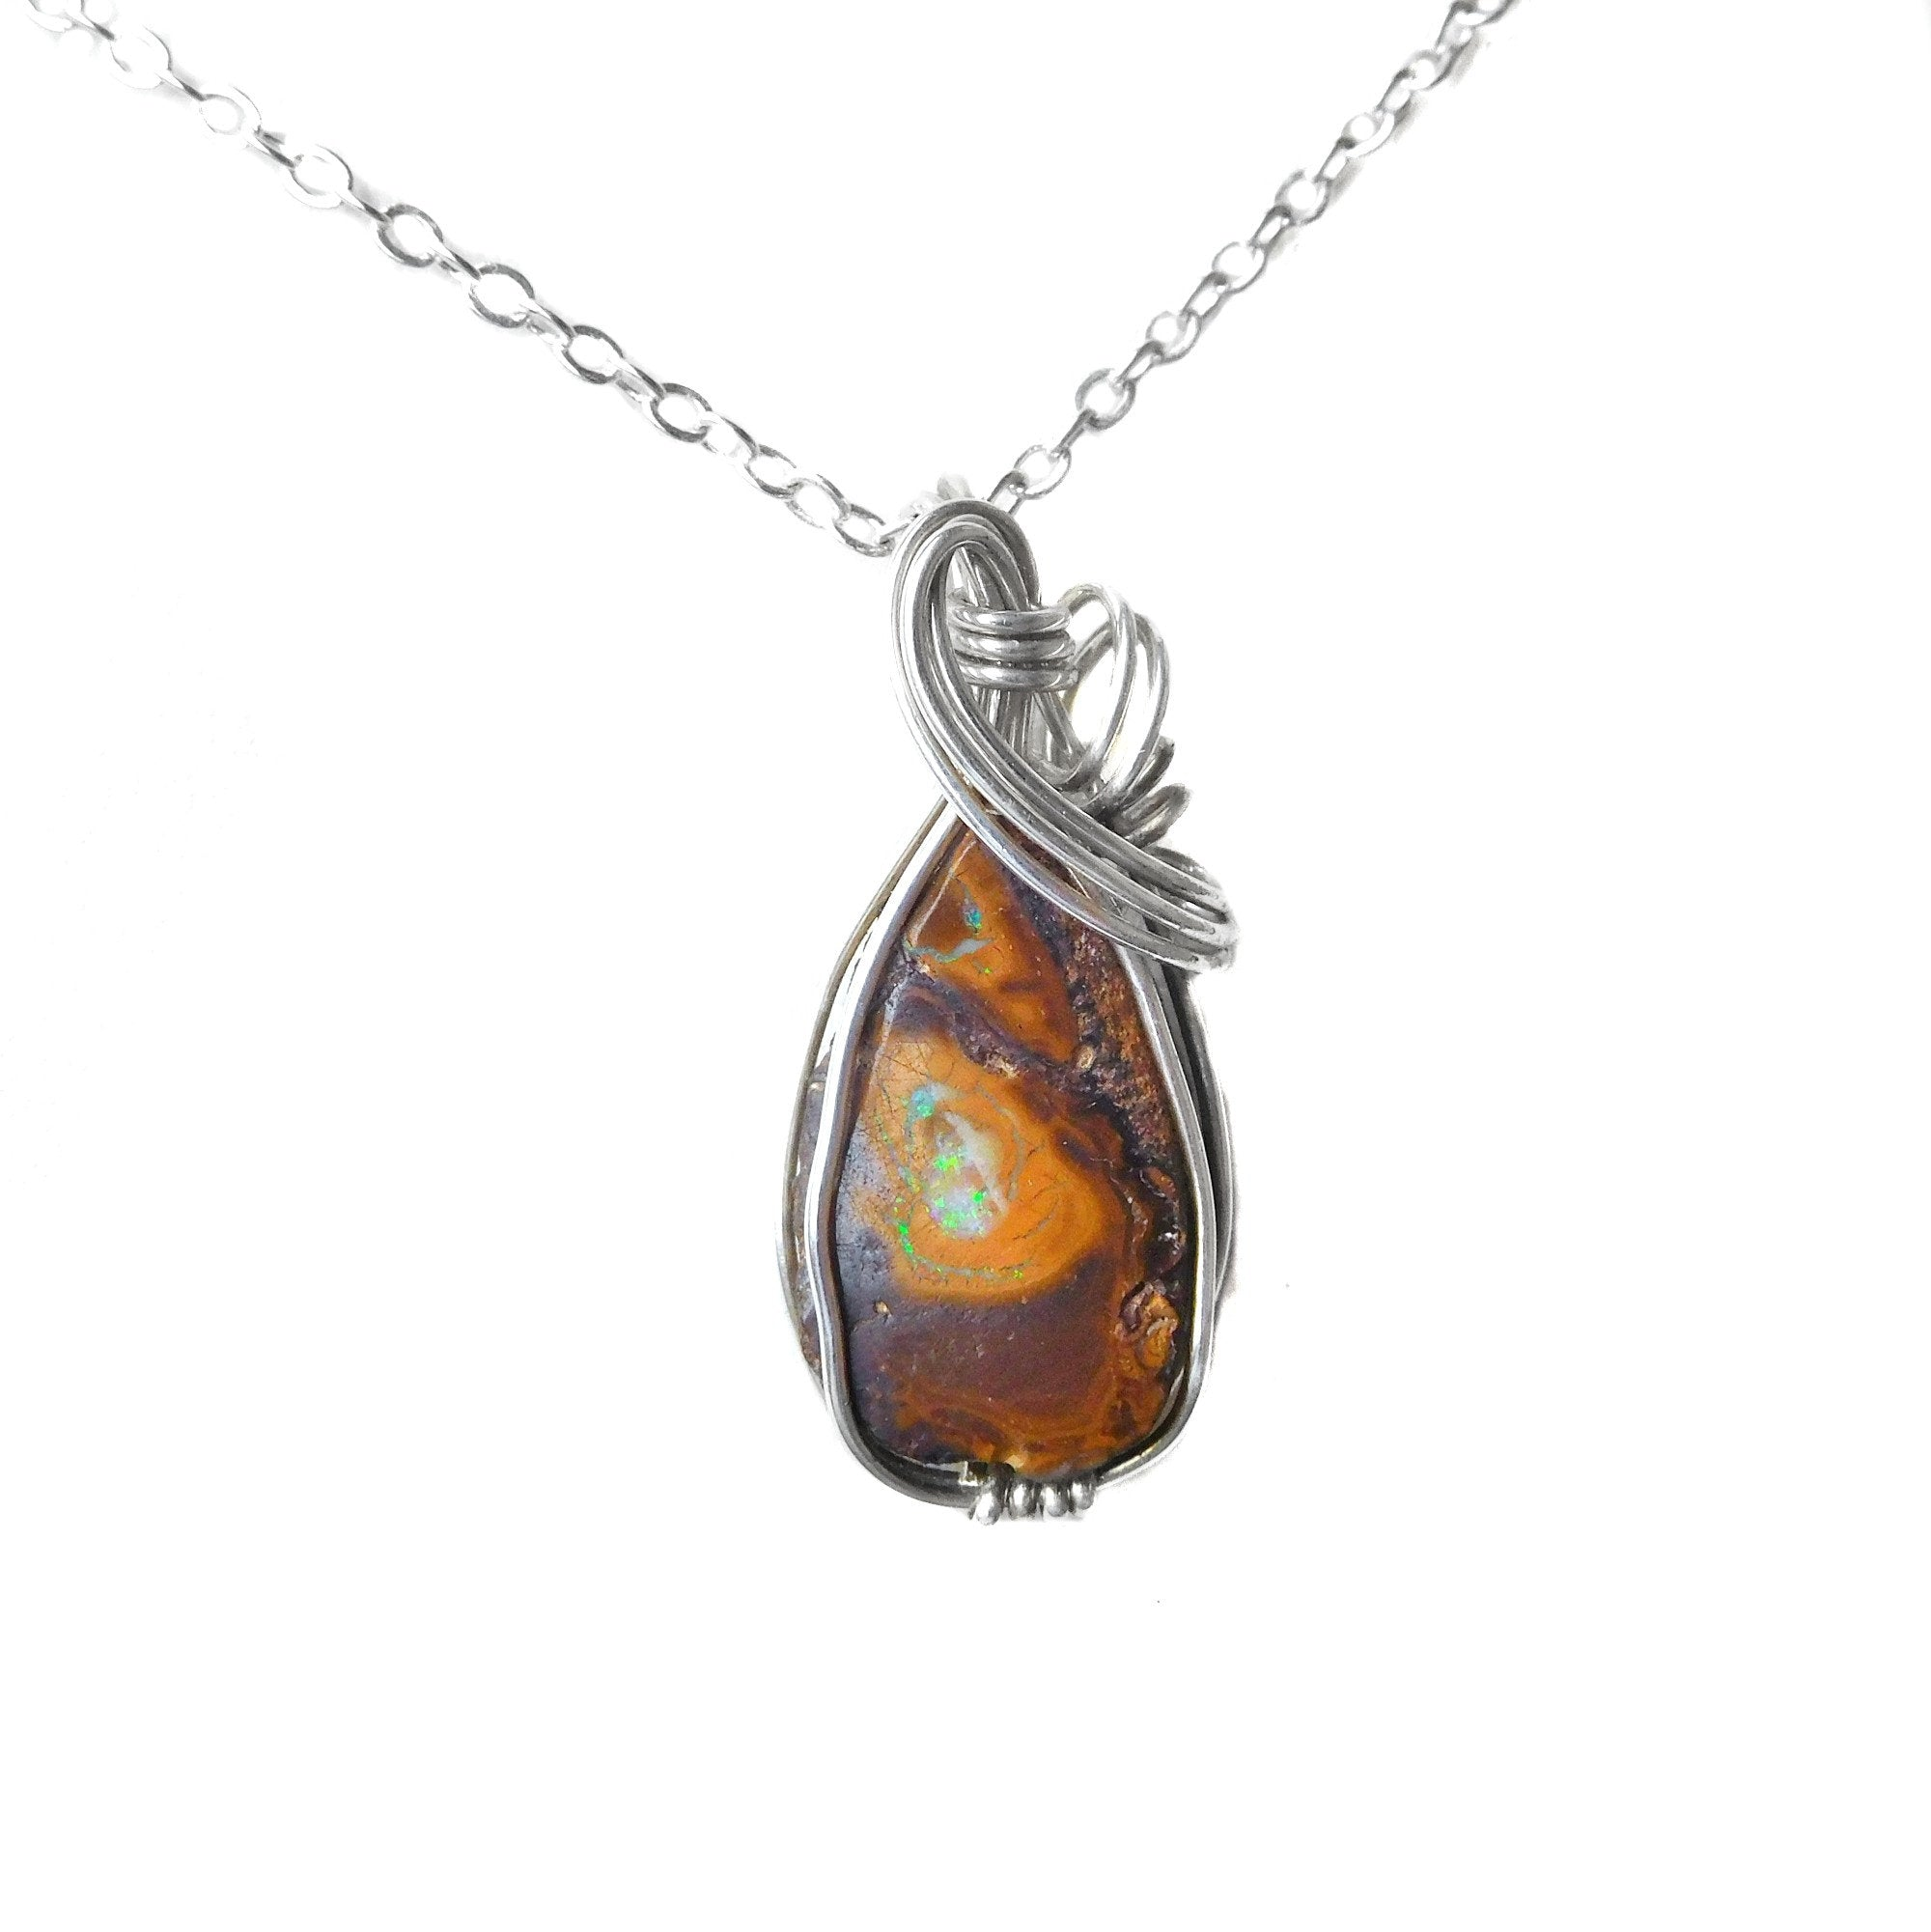 Koroit rough Opal pendant, small opal, sterling silver, wire wrapped pendant, unique gift